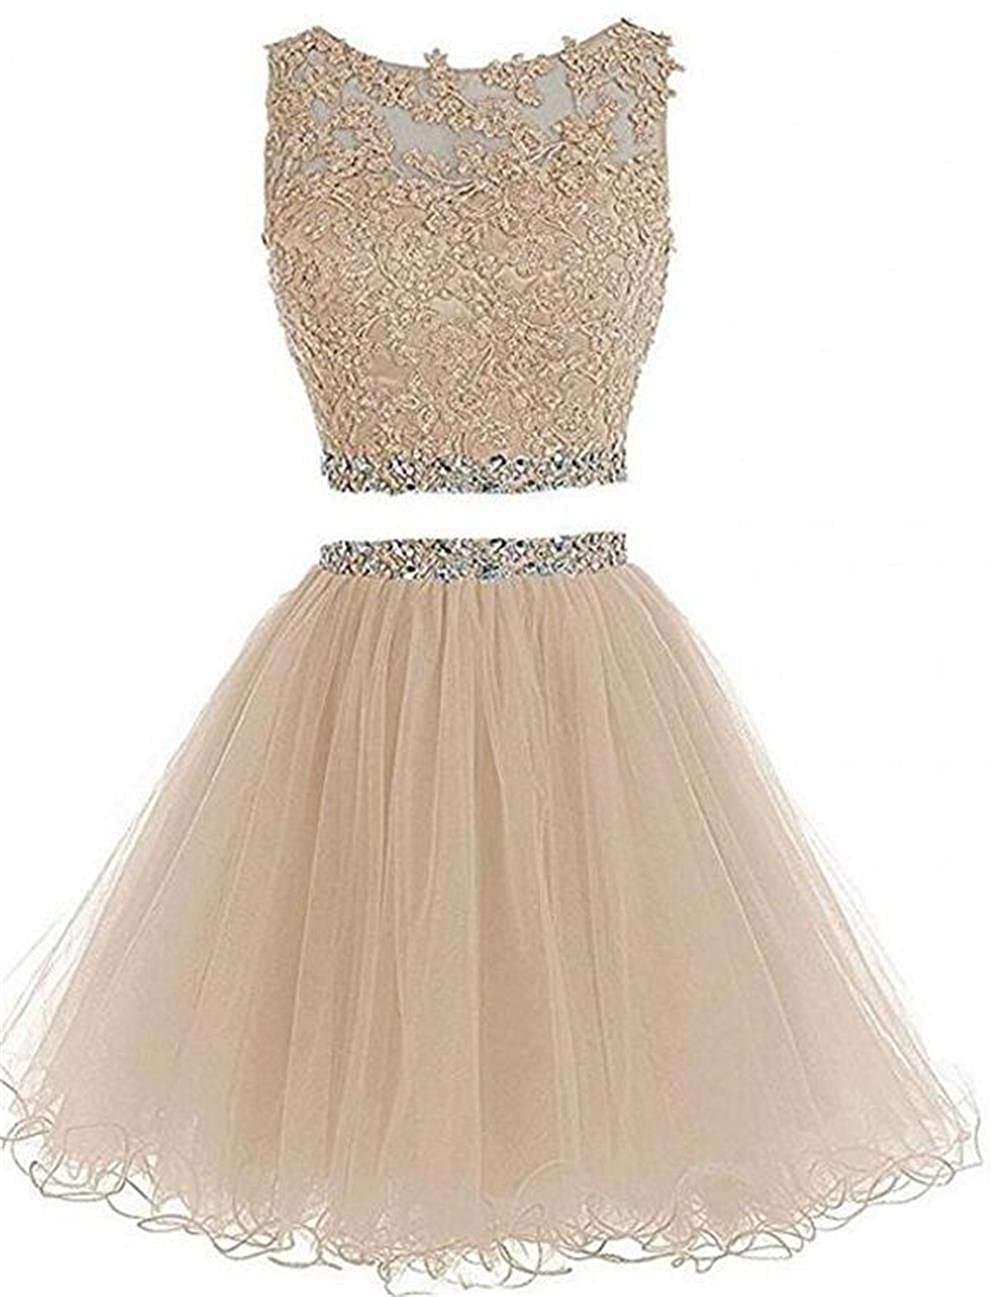 27426be090bc Women 2 piece scoop open back appliques crystals a line tulle short prom  party dress homecoming dresses for juniors teens plus size